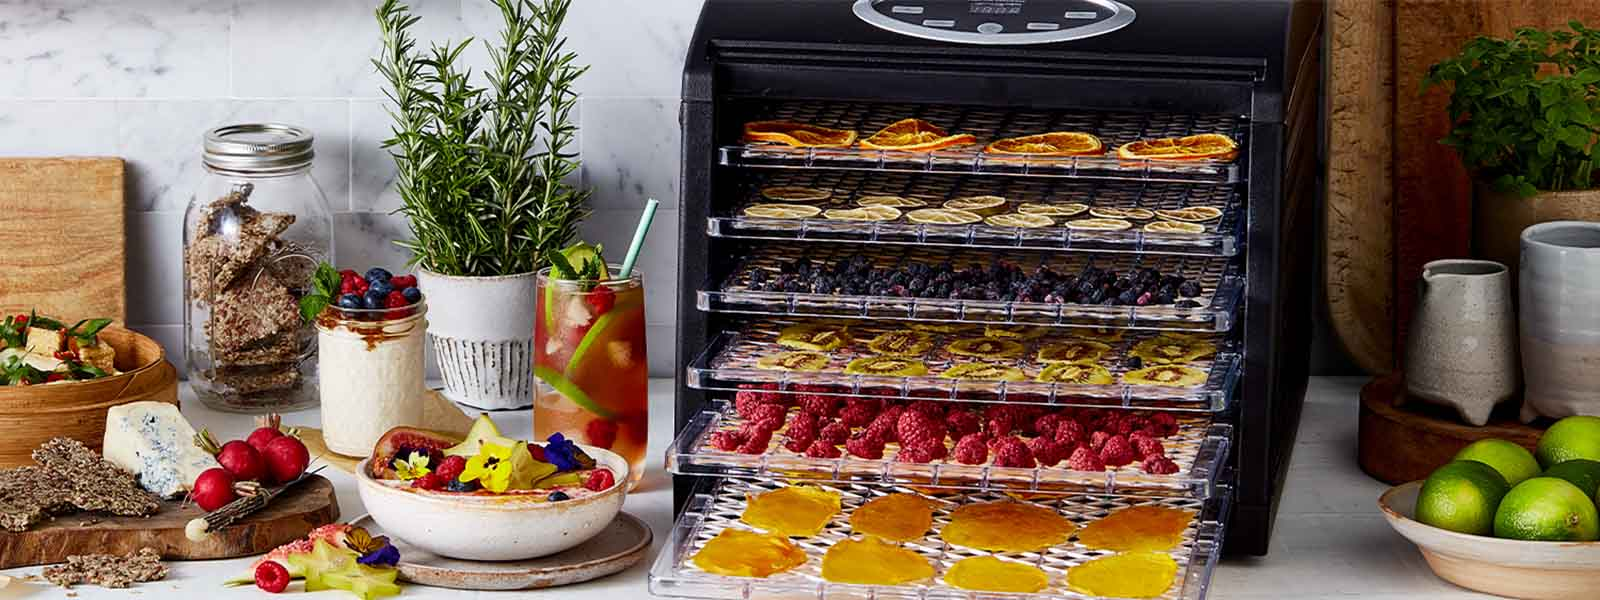 The Sunbeam Food Lab Electronic Dehydrator with various food on each shelf.